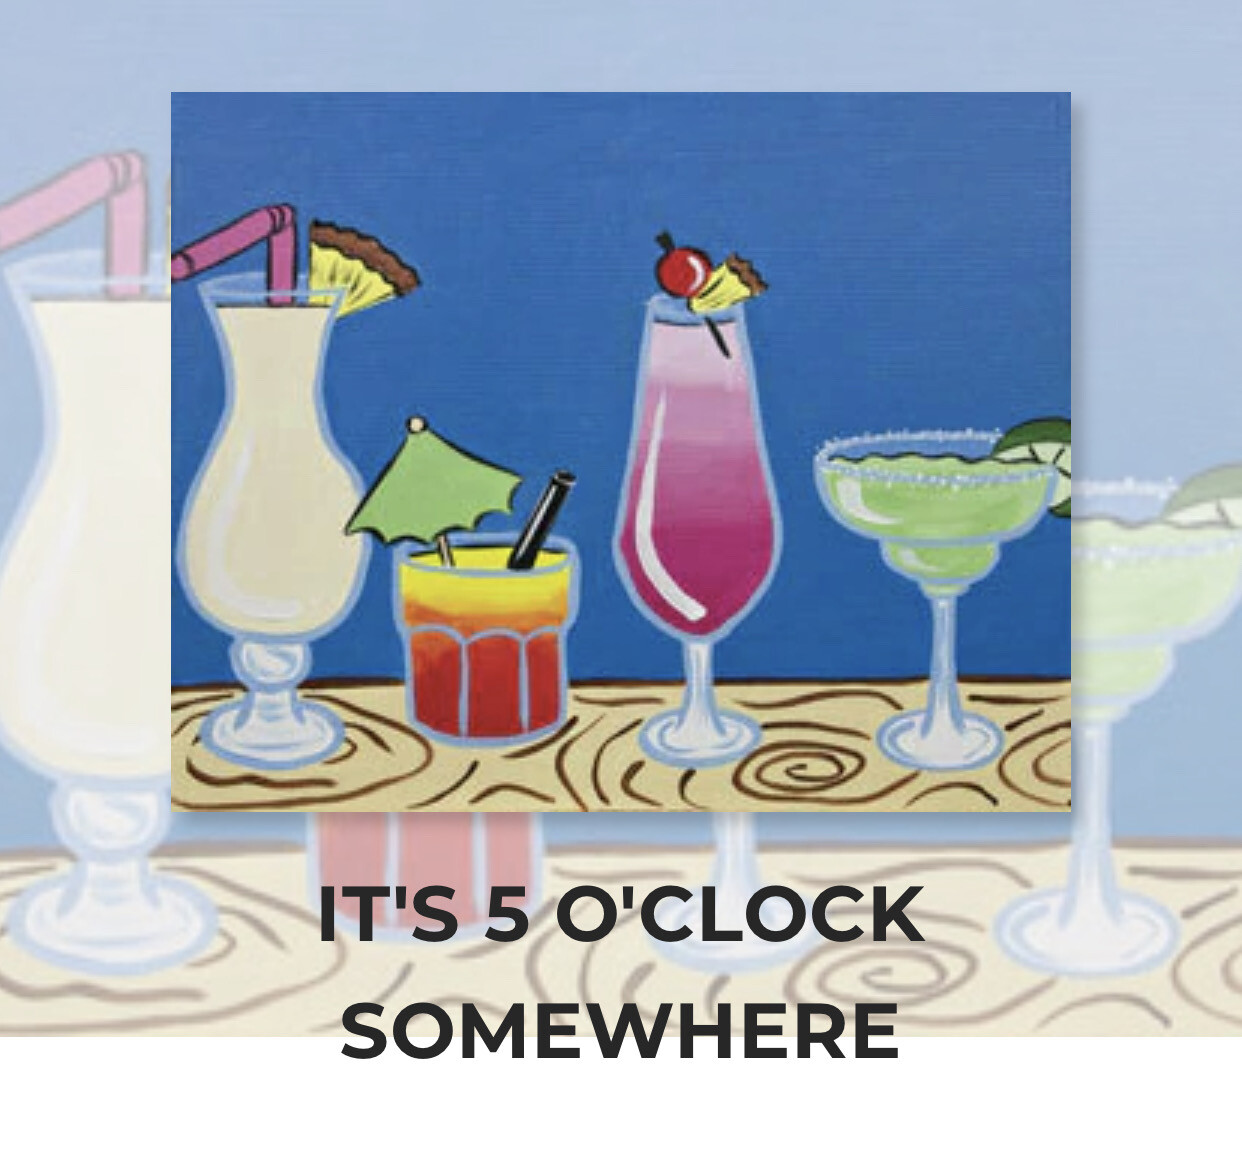 It's 5 O'Clock Somewhere ADULT Acrylic Paint On Canvas DIY Art Kit  - 3 Week Special Order